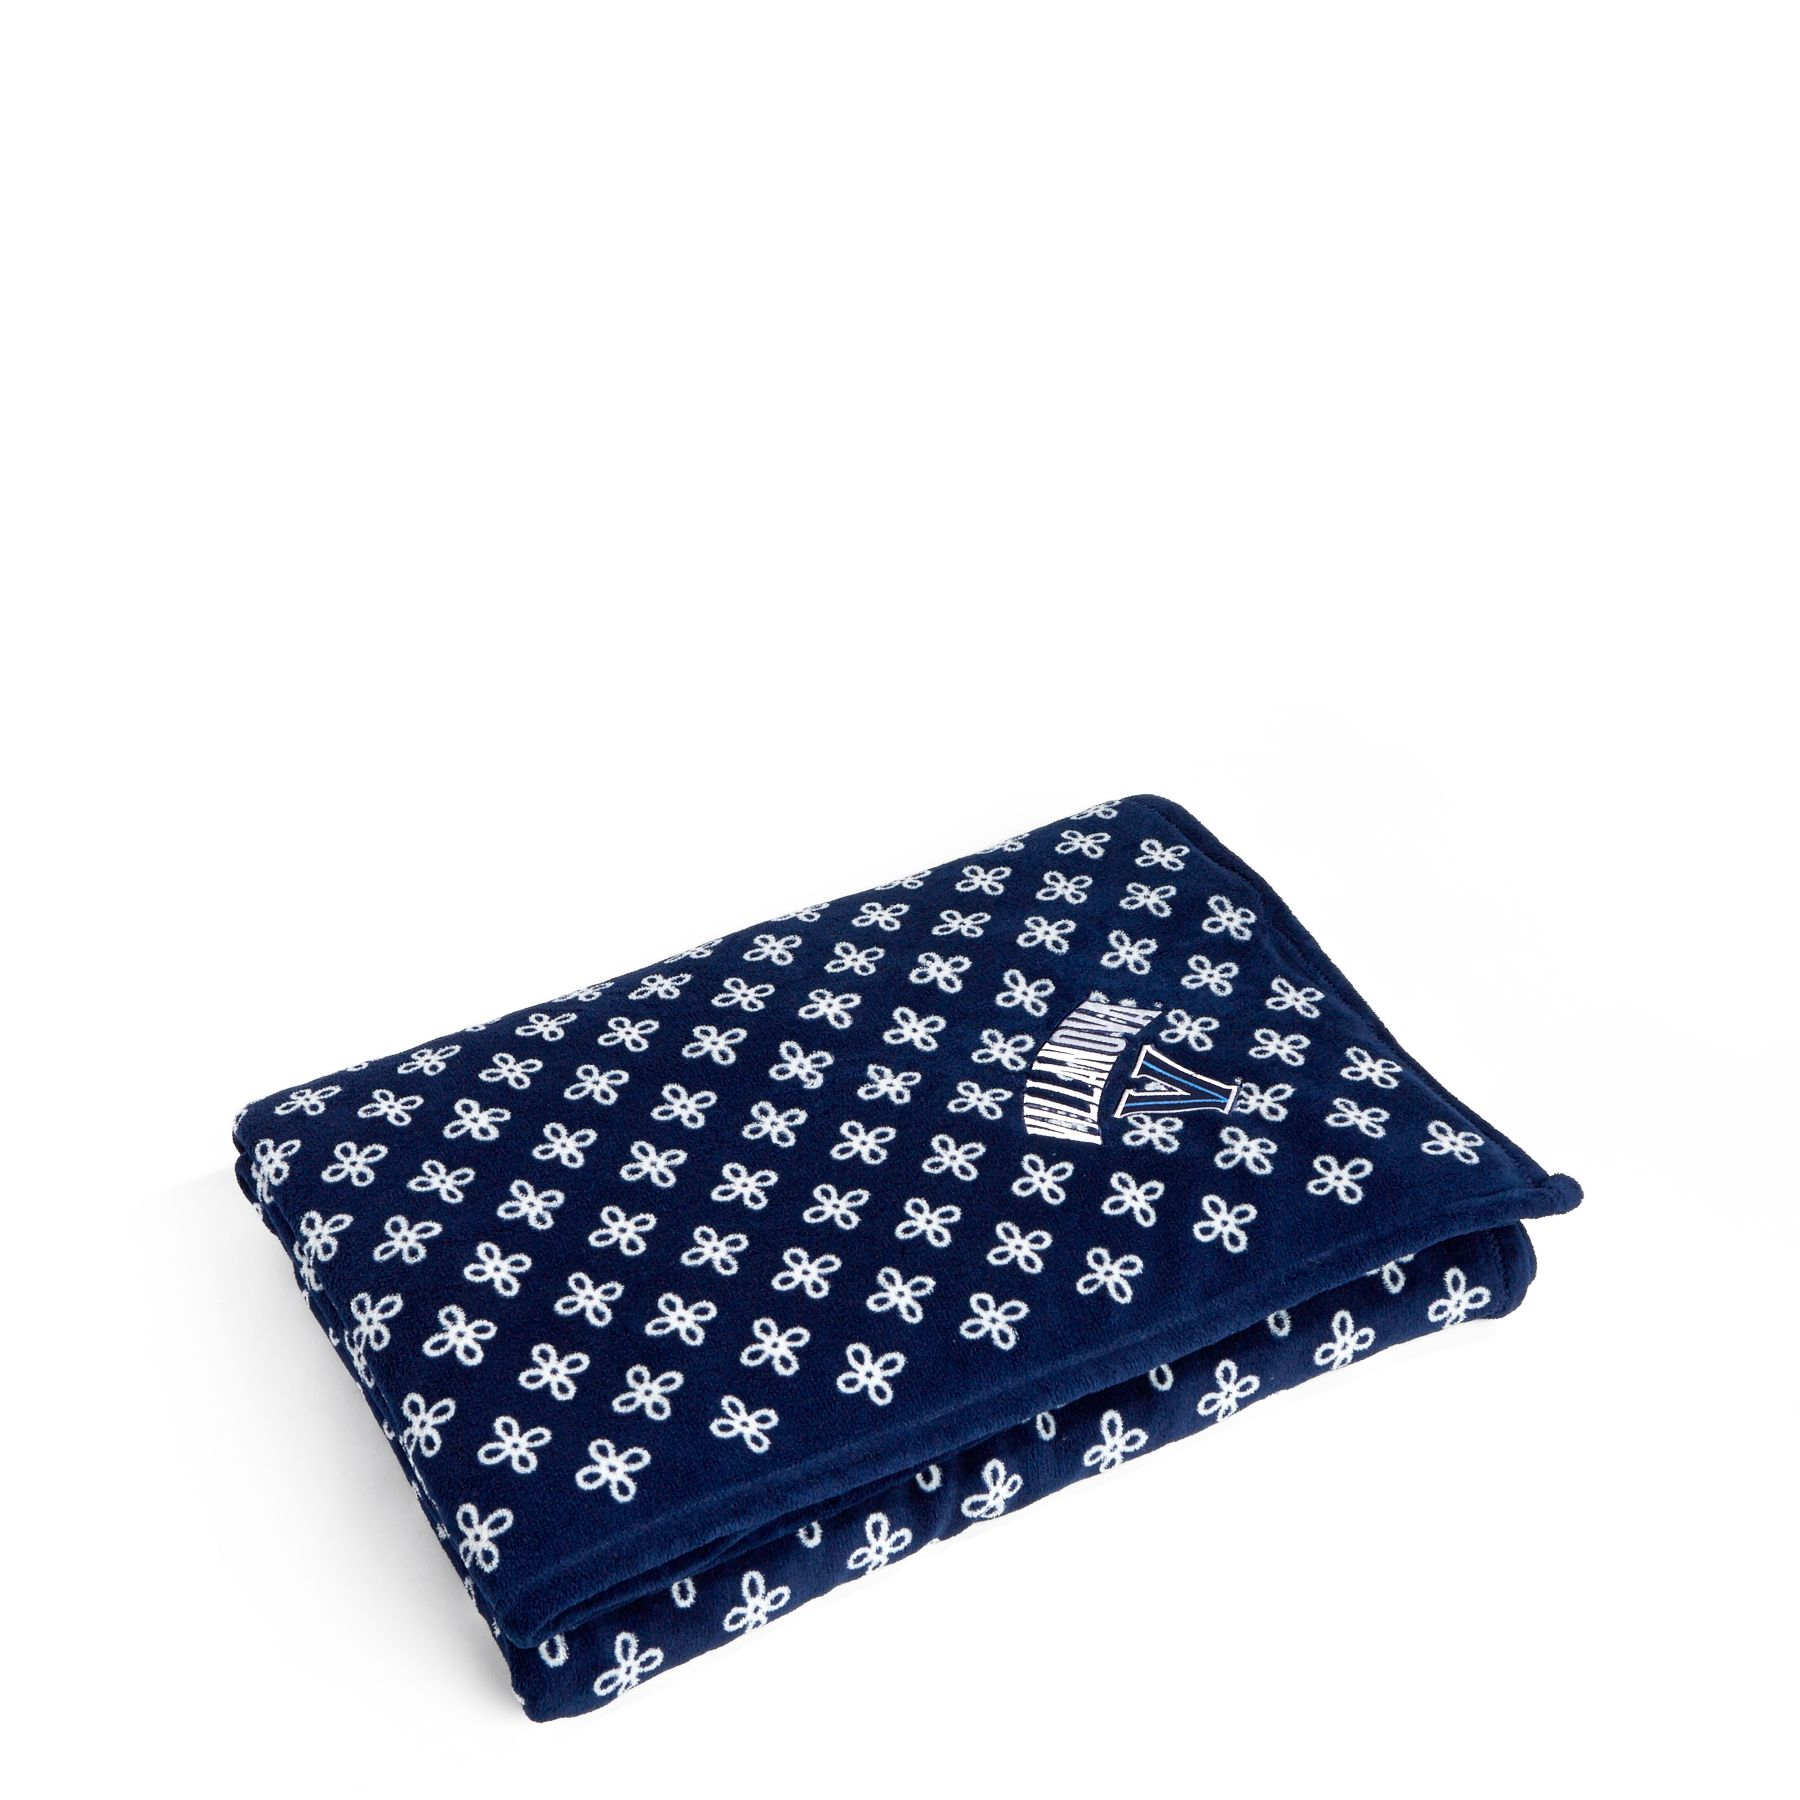 Vera Bradley Xl Throw Blanket In Navy White Mini C 88